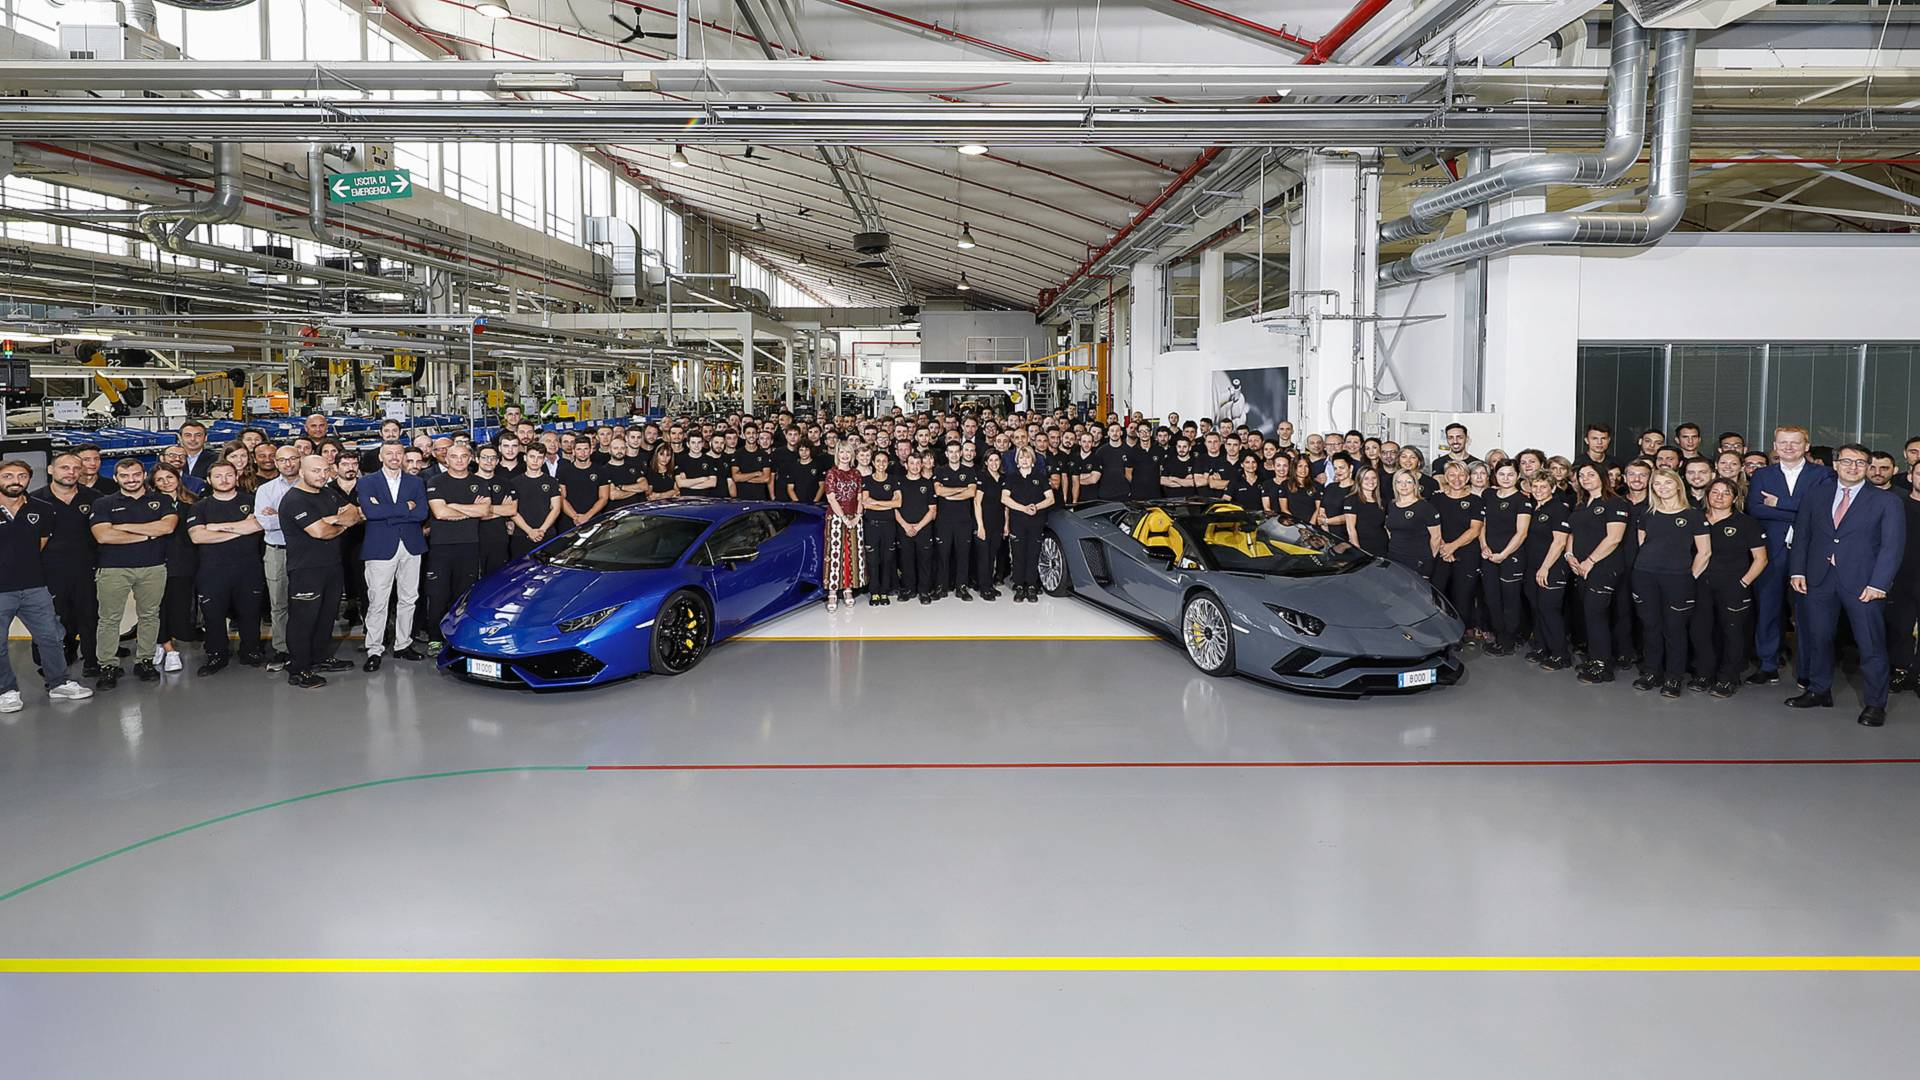 Get A Tour Of Lamborghini S Factory Without Traveling To Italy